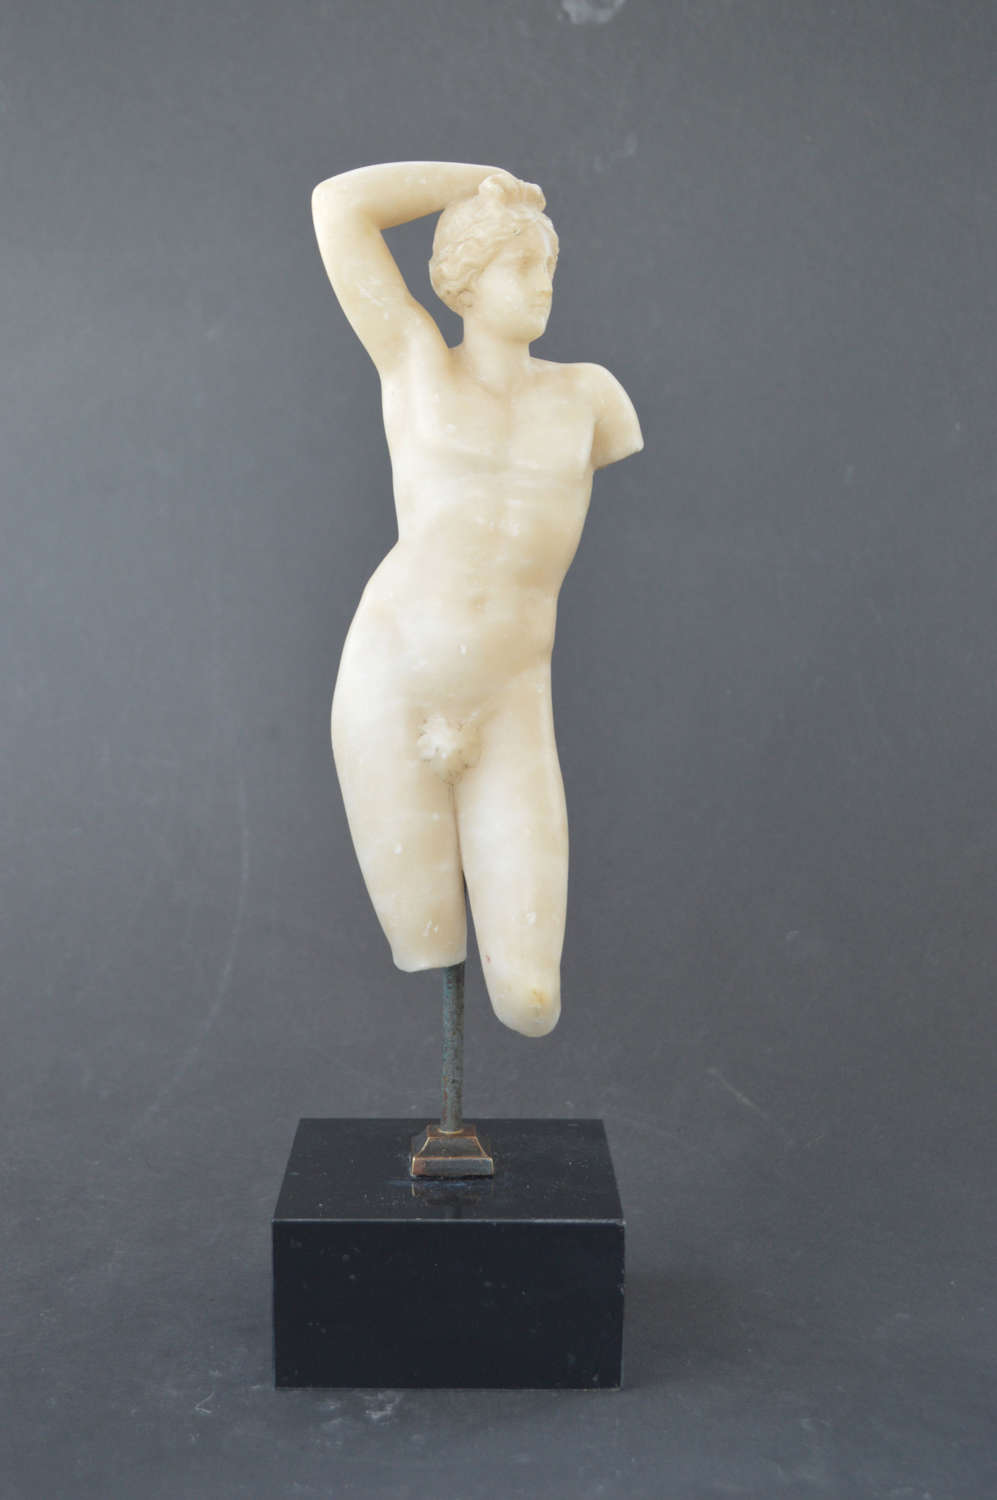 Antique sculpture of classical male torso